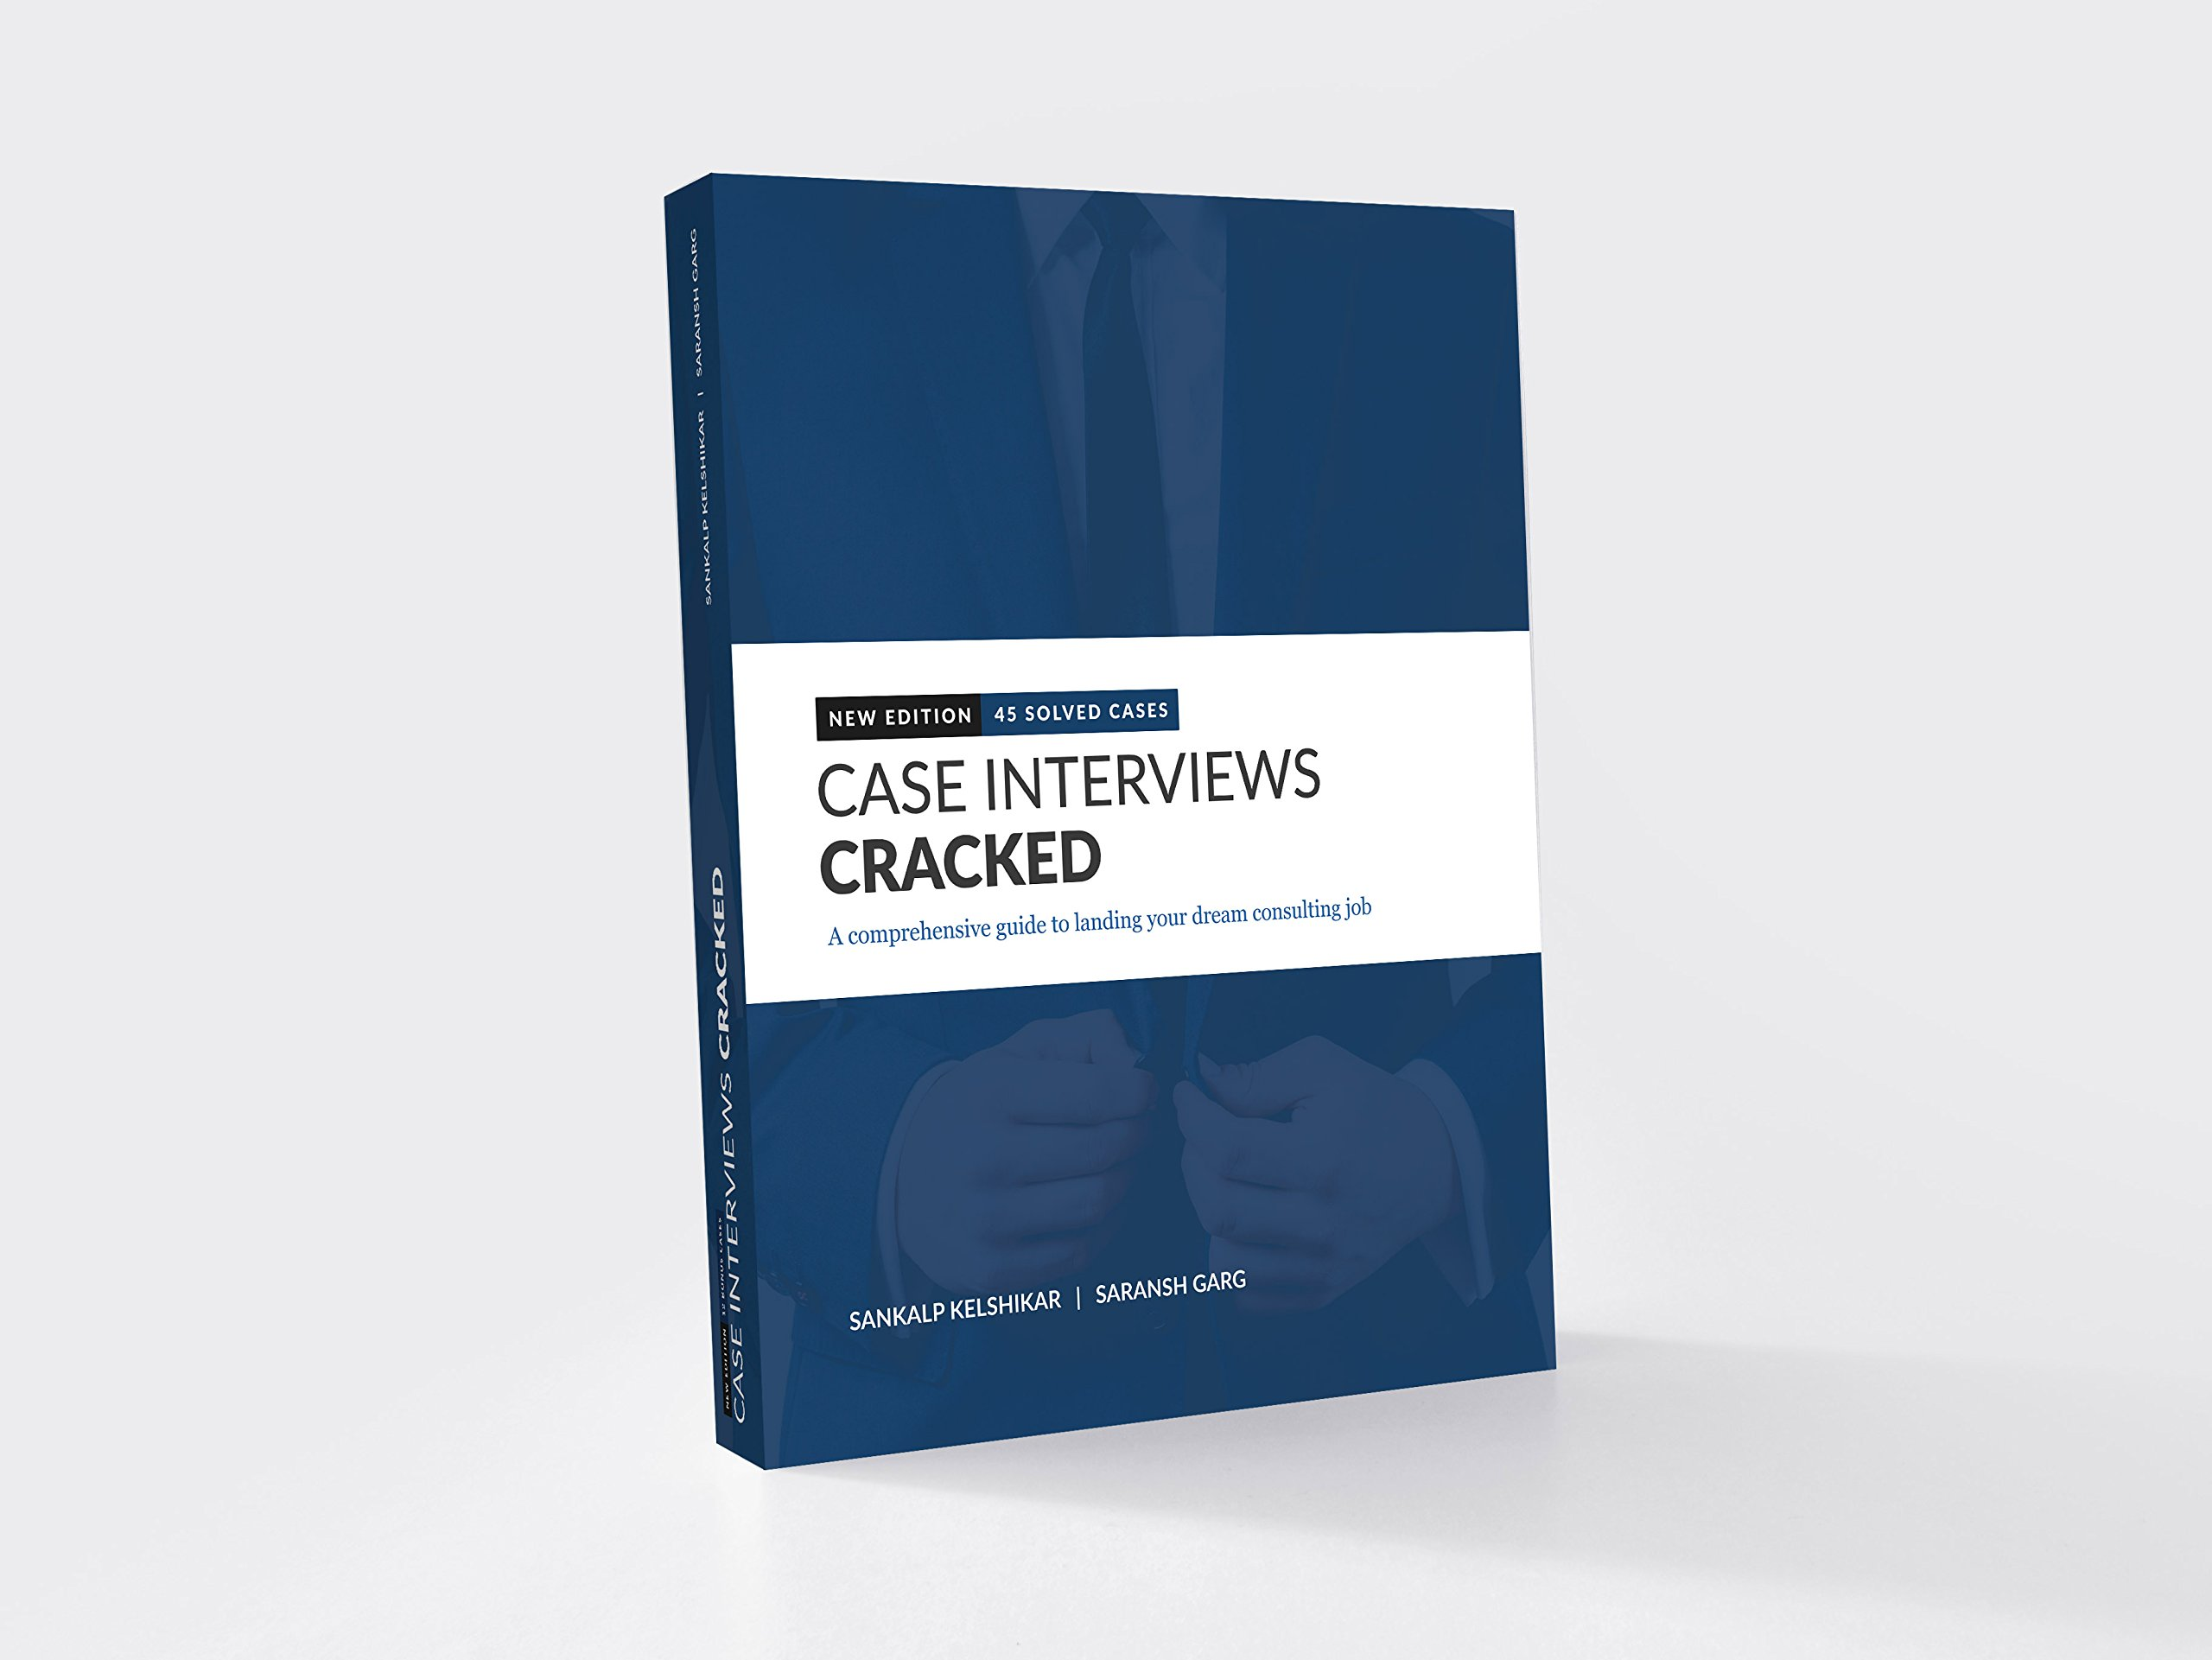 buy case interviews cracked book online at low prices in buy case interviews cracked book online at low prices in case interviews cracked reviews ratings amazon in